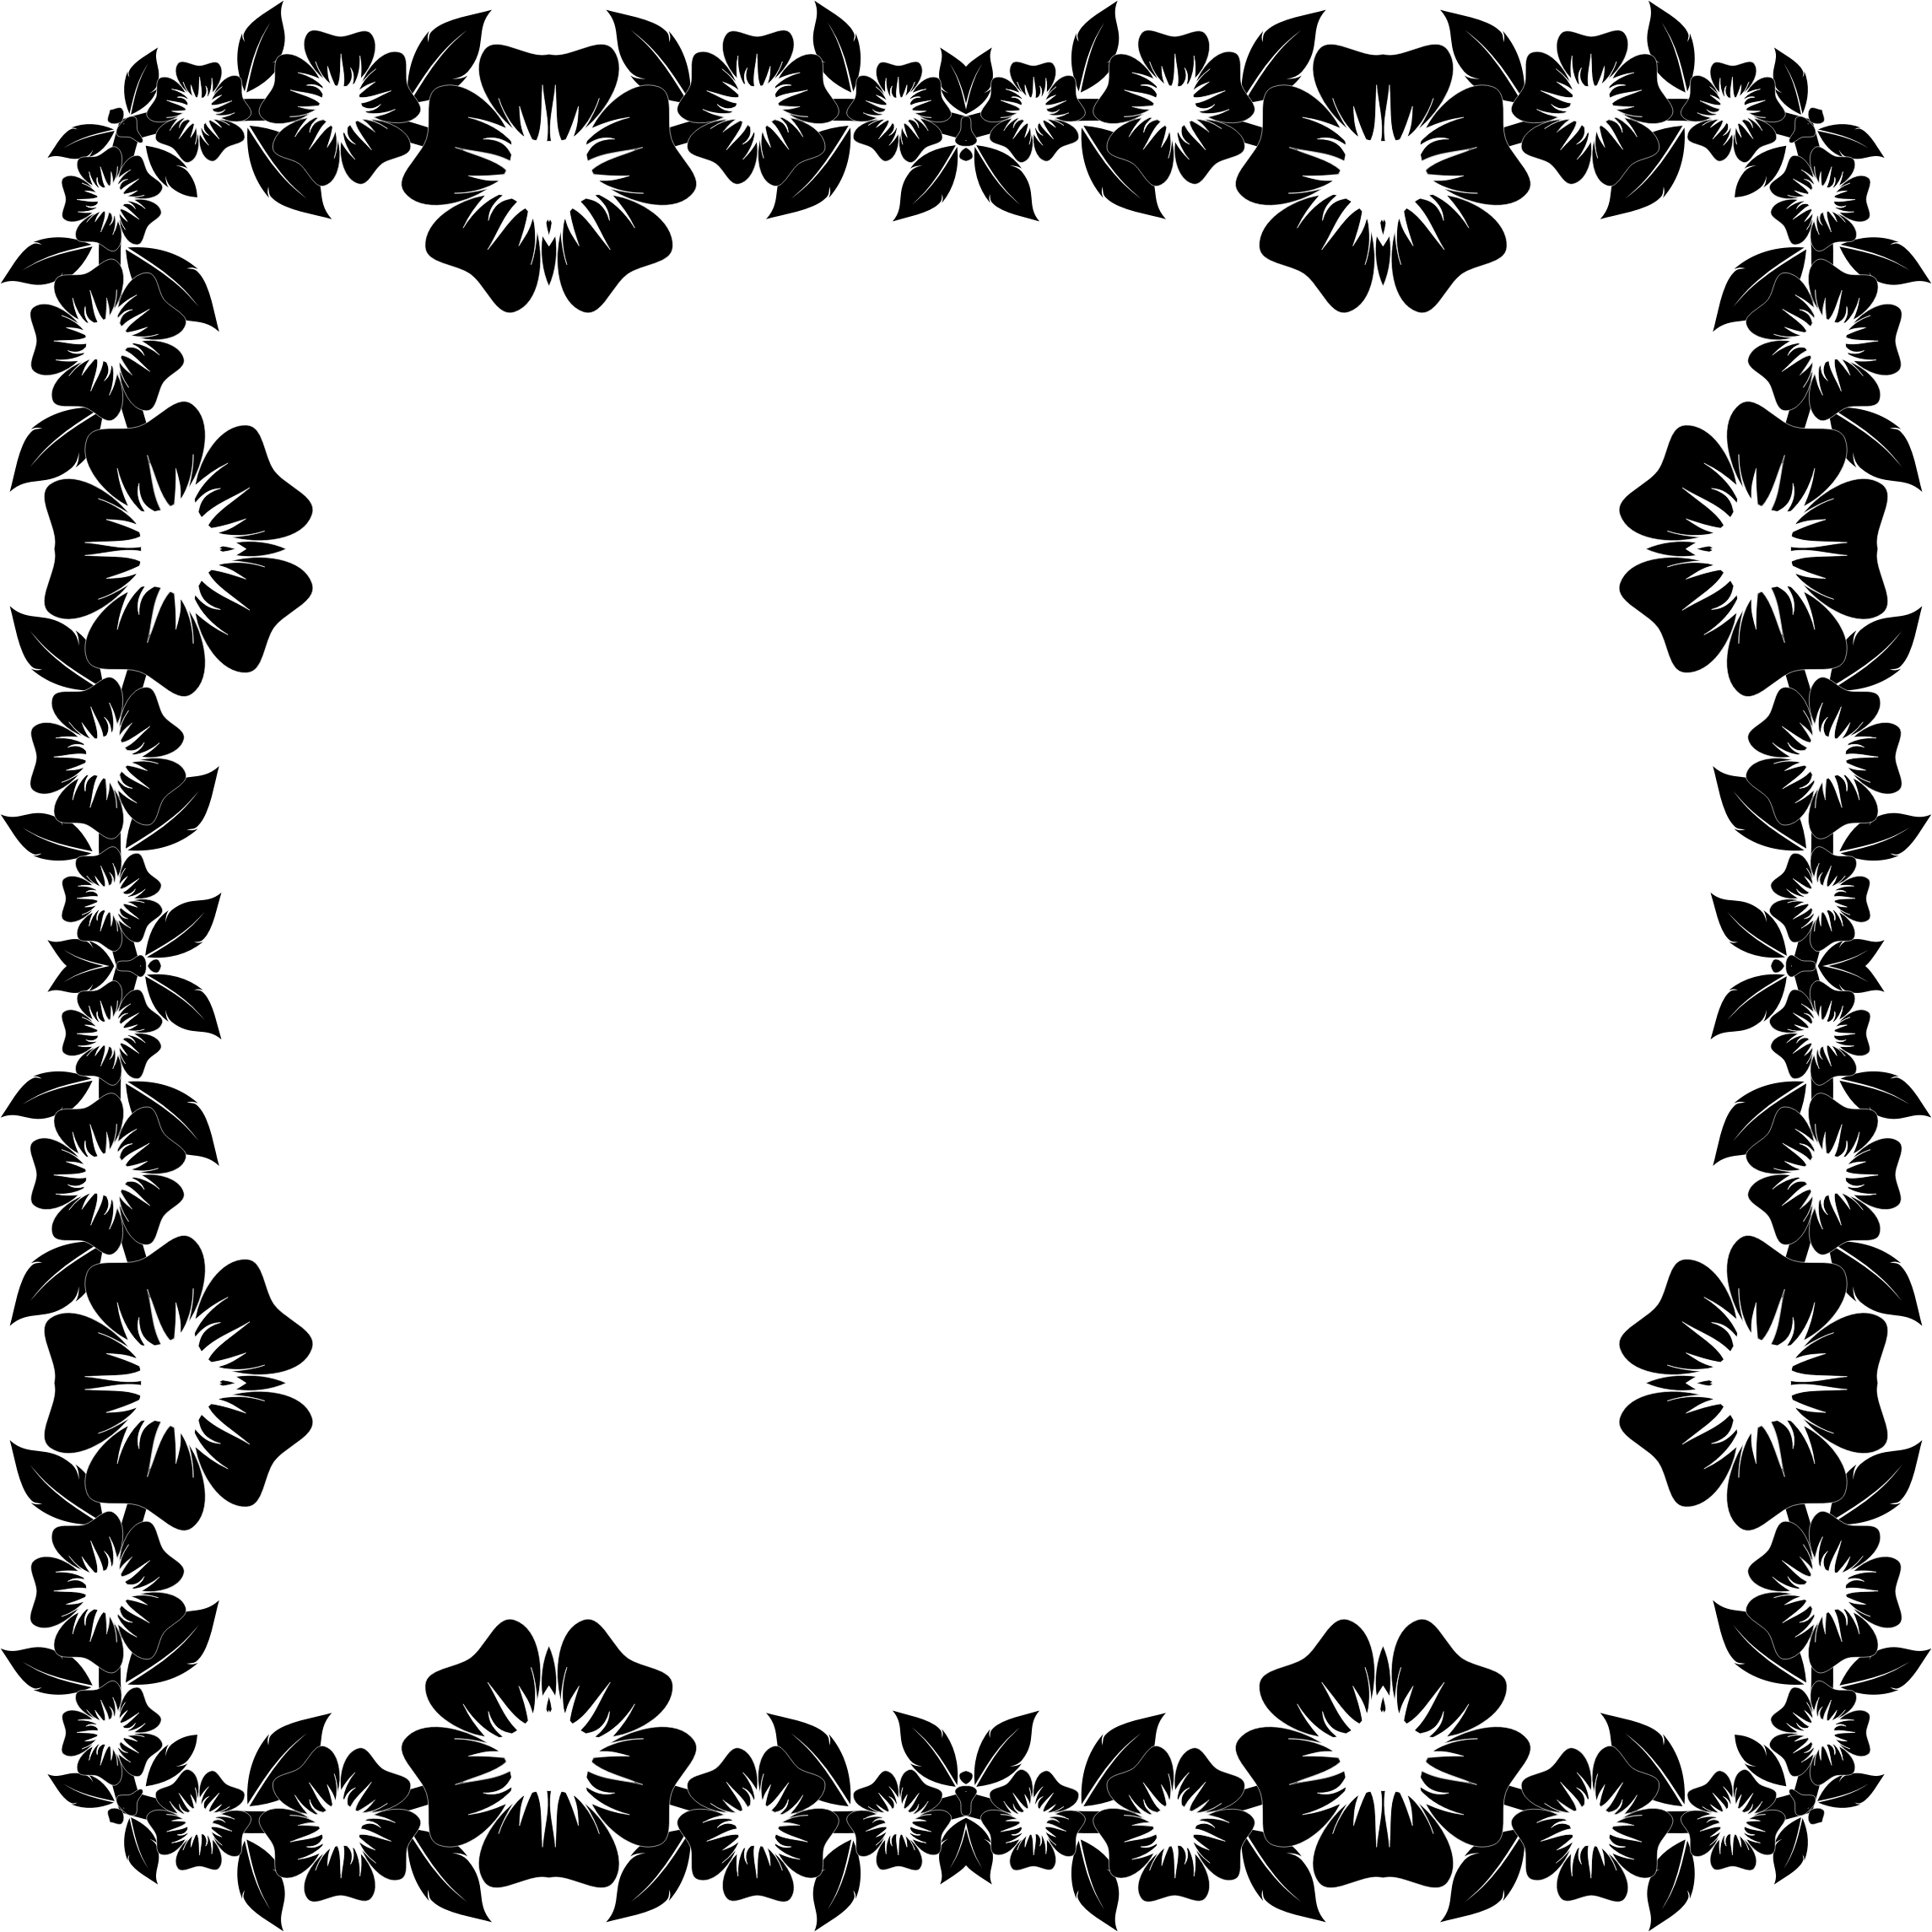 Flower Frame Black And White Png 4 Png Image